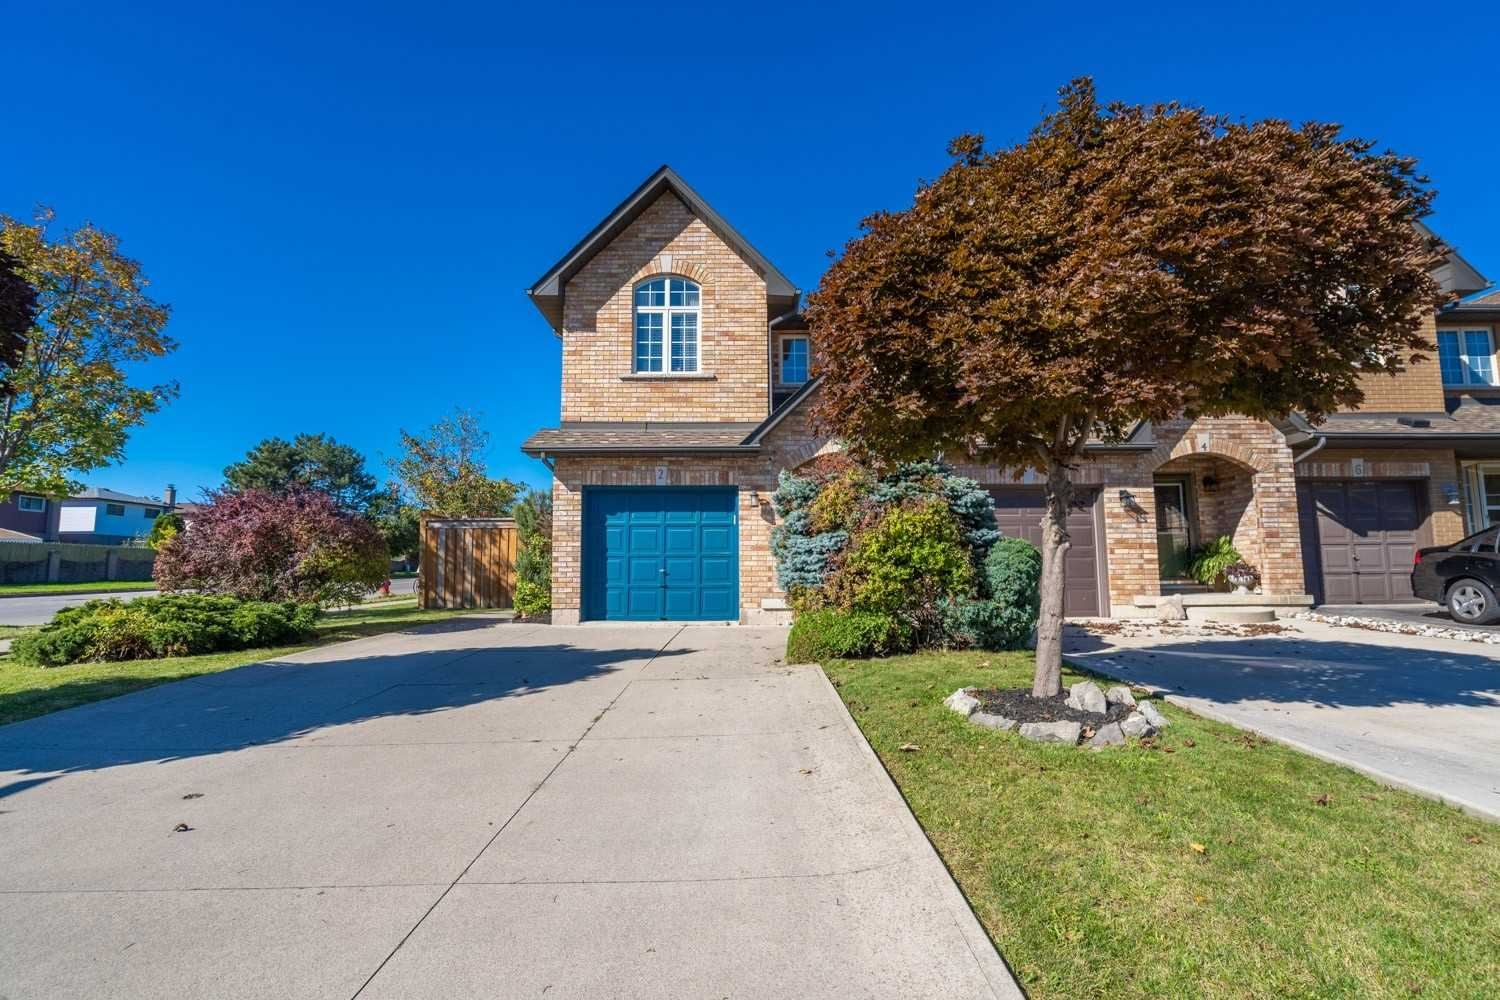 2 Townmansion Dr, Hamilton, ON L8T 5A7 - MLS#: X5409285